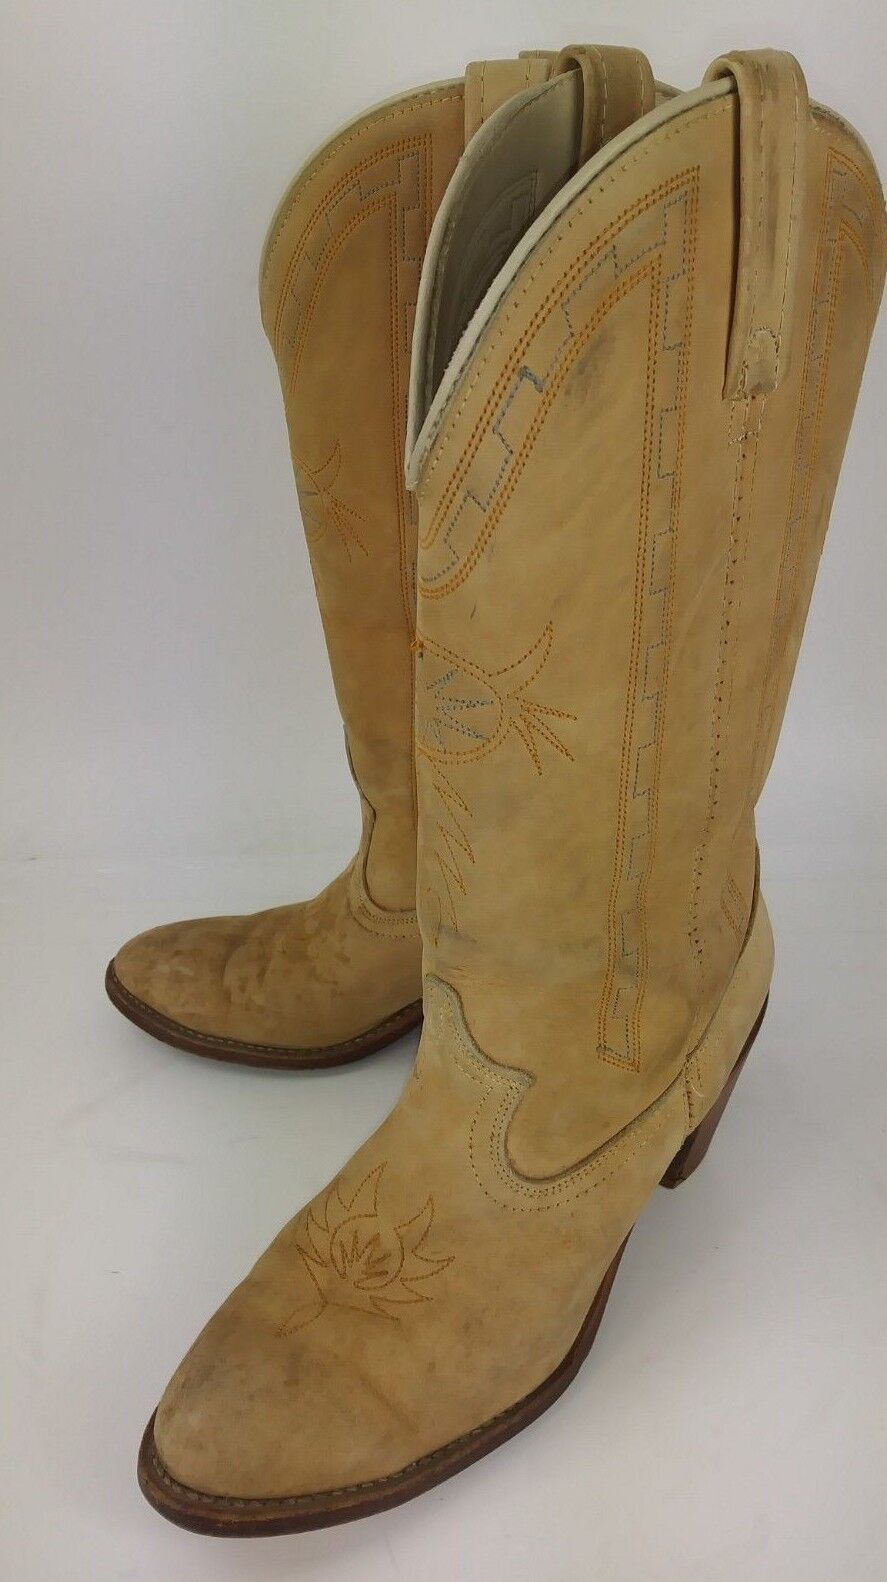 Circle A 7492 Wos Boots Boots Boots Tall US 8.5 M Tan Leather Cowboy Rockabilly 1007 6d3643